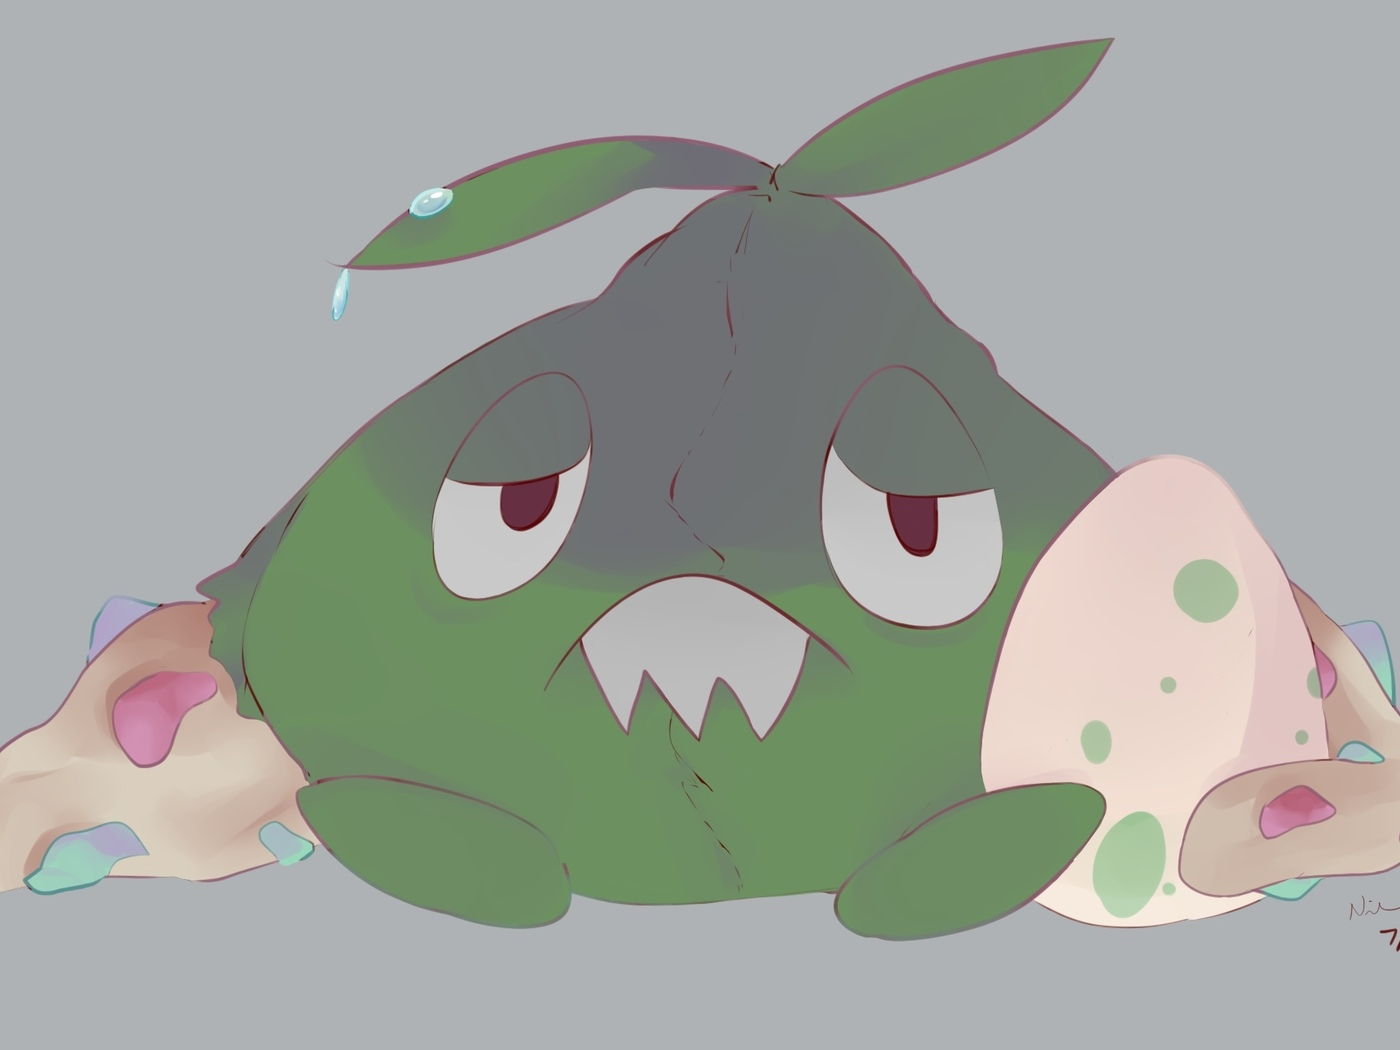 trubbish, pokemon